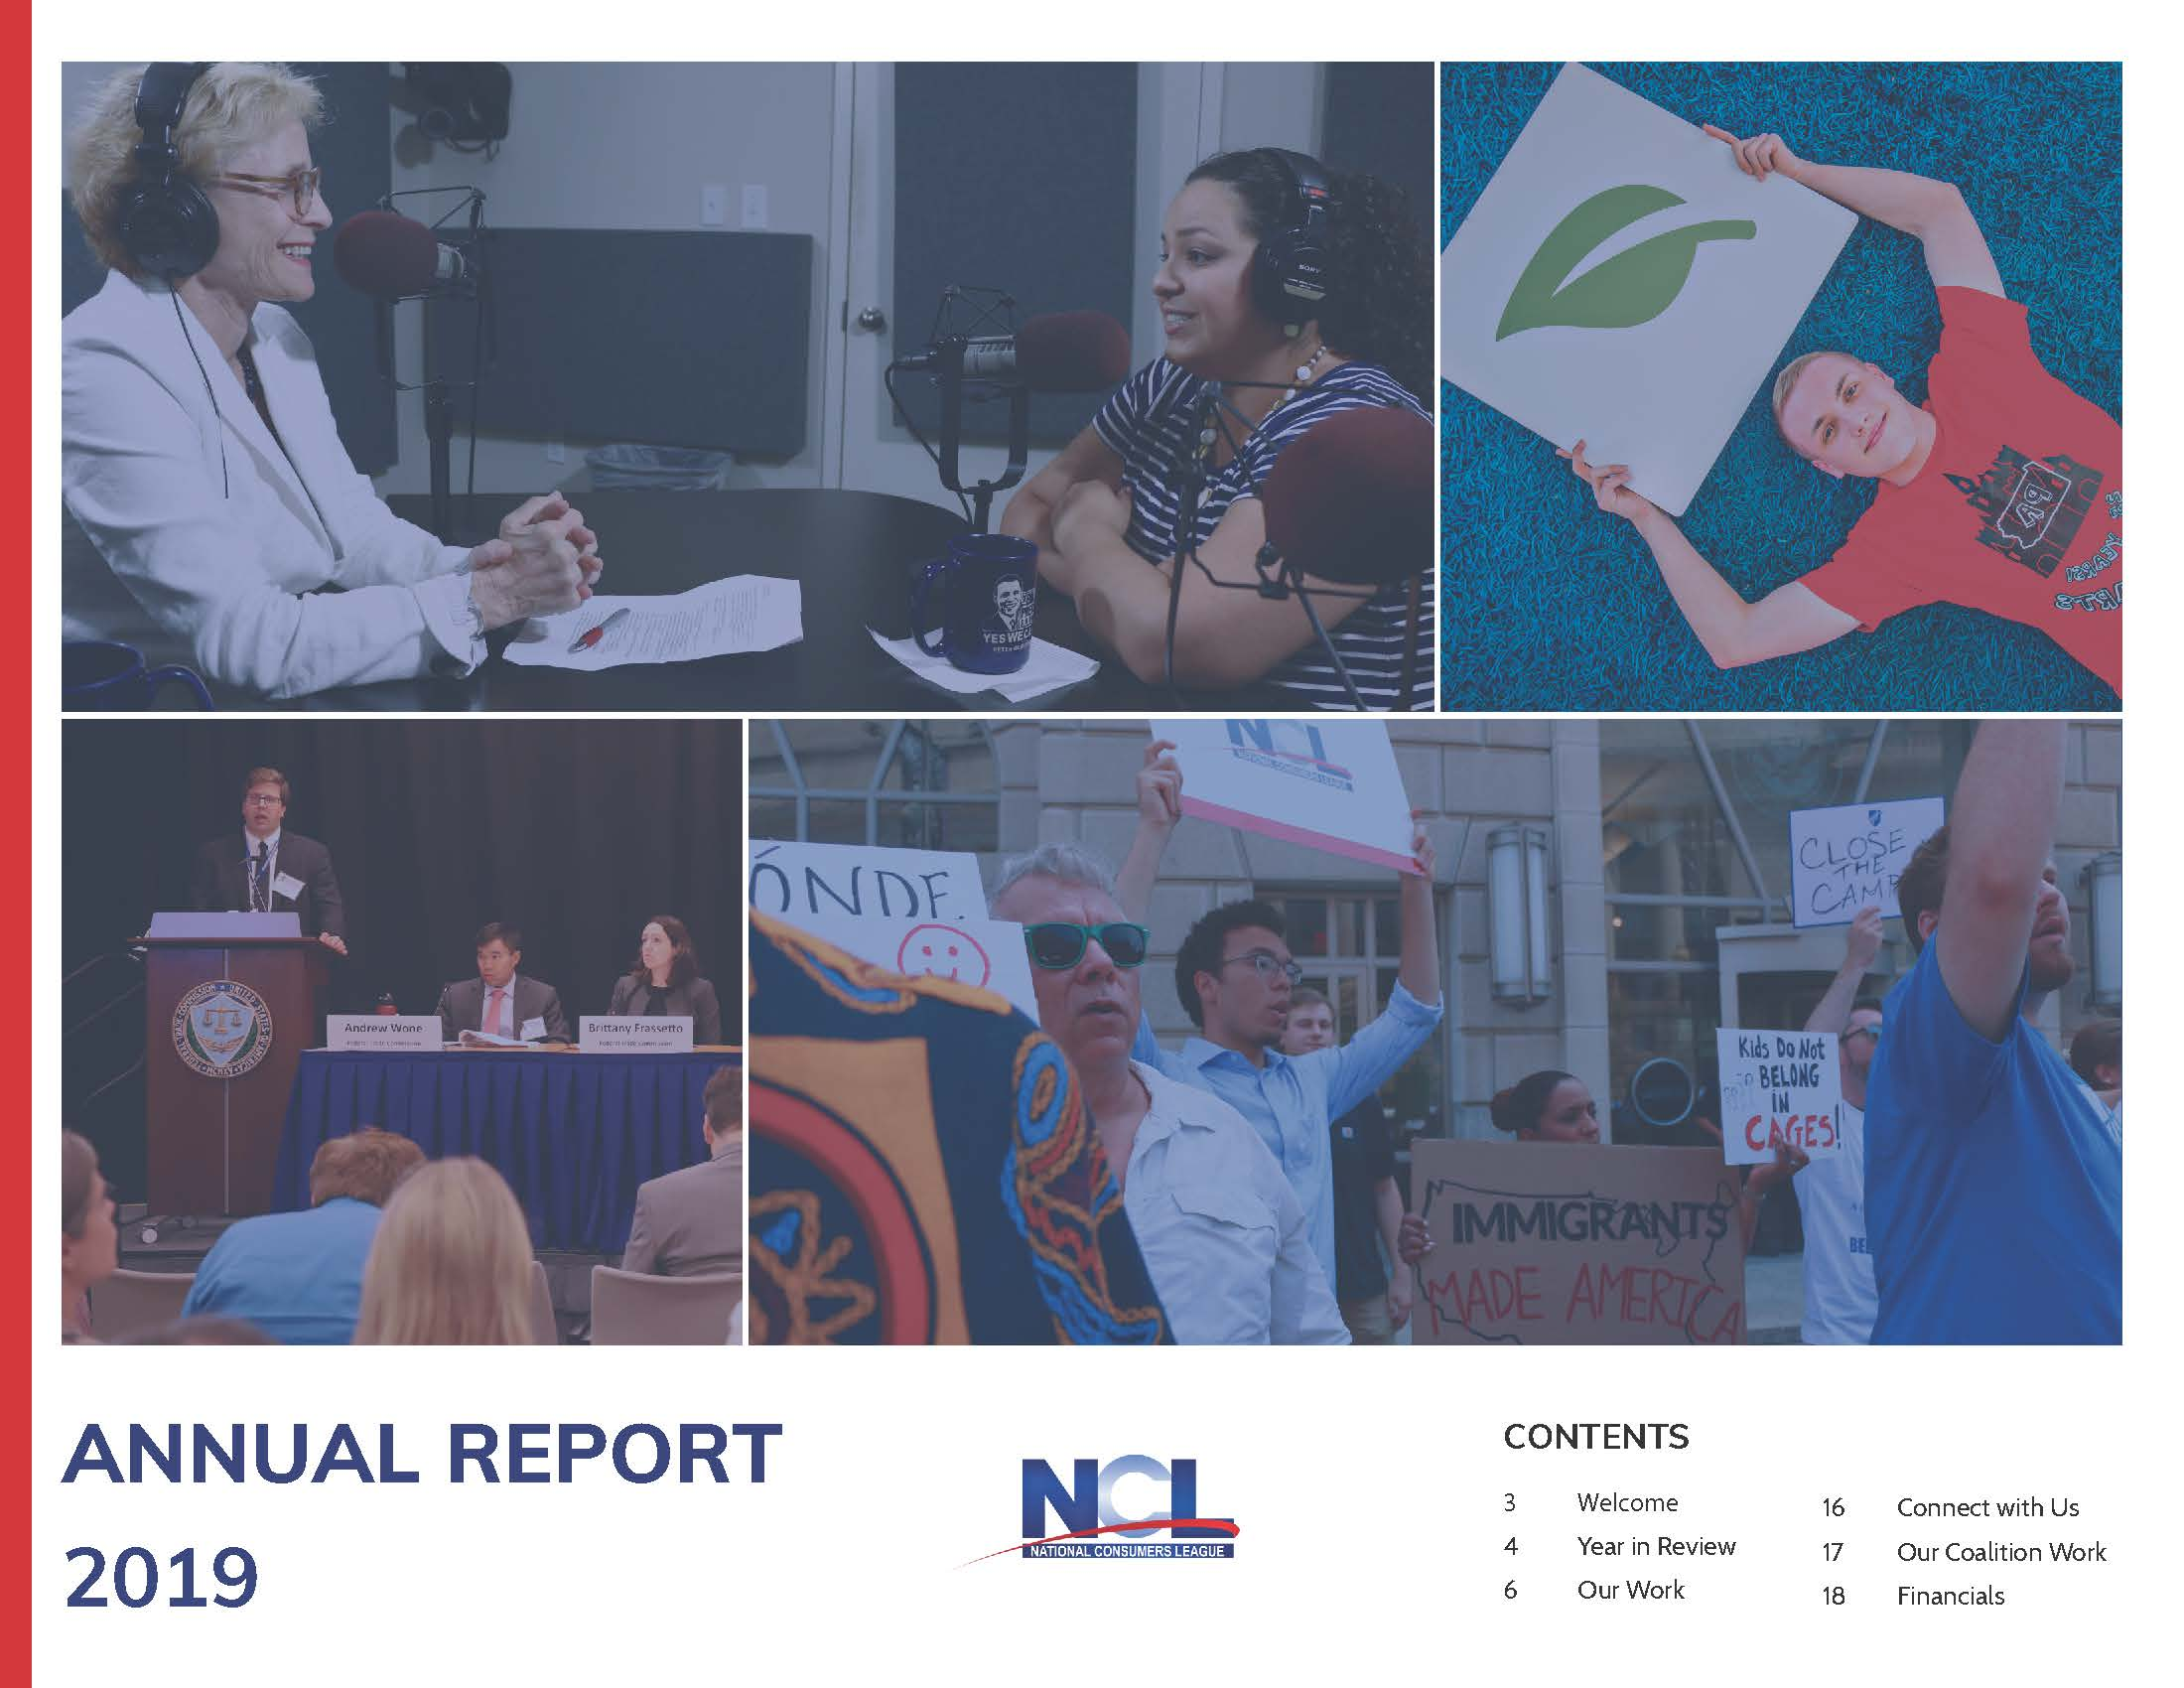 NCL Annual Report 2019 Cover image